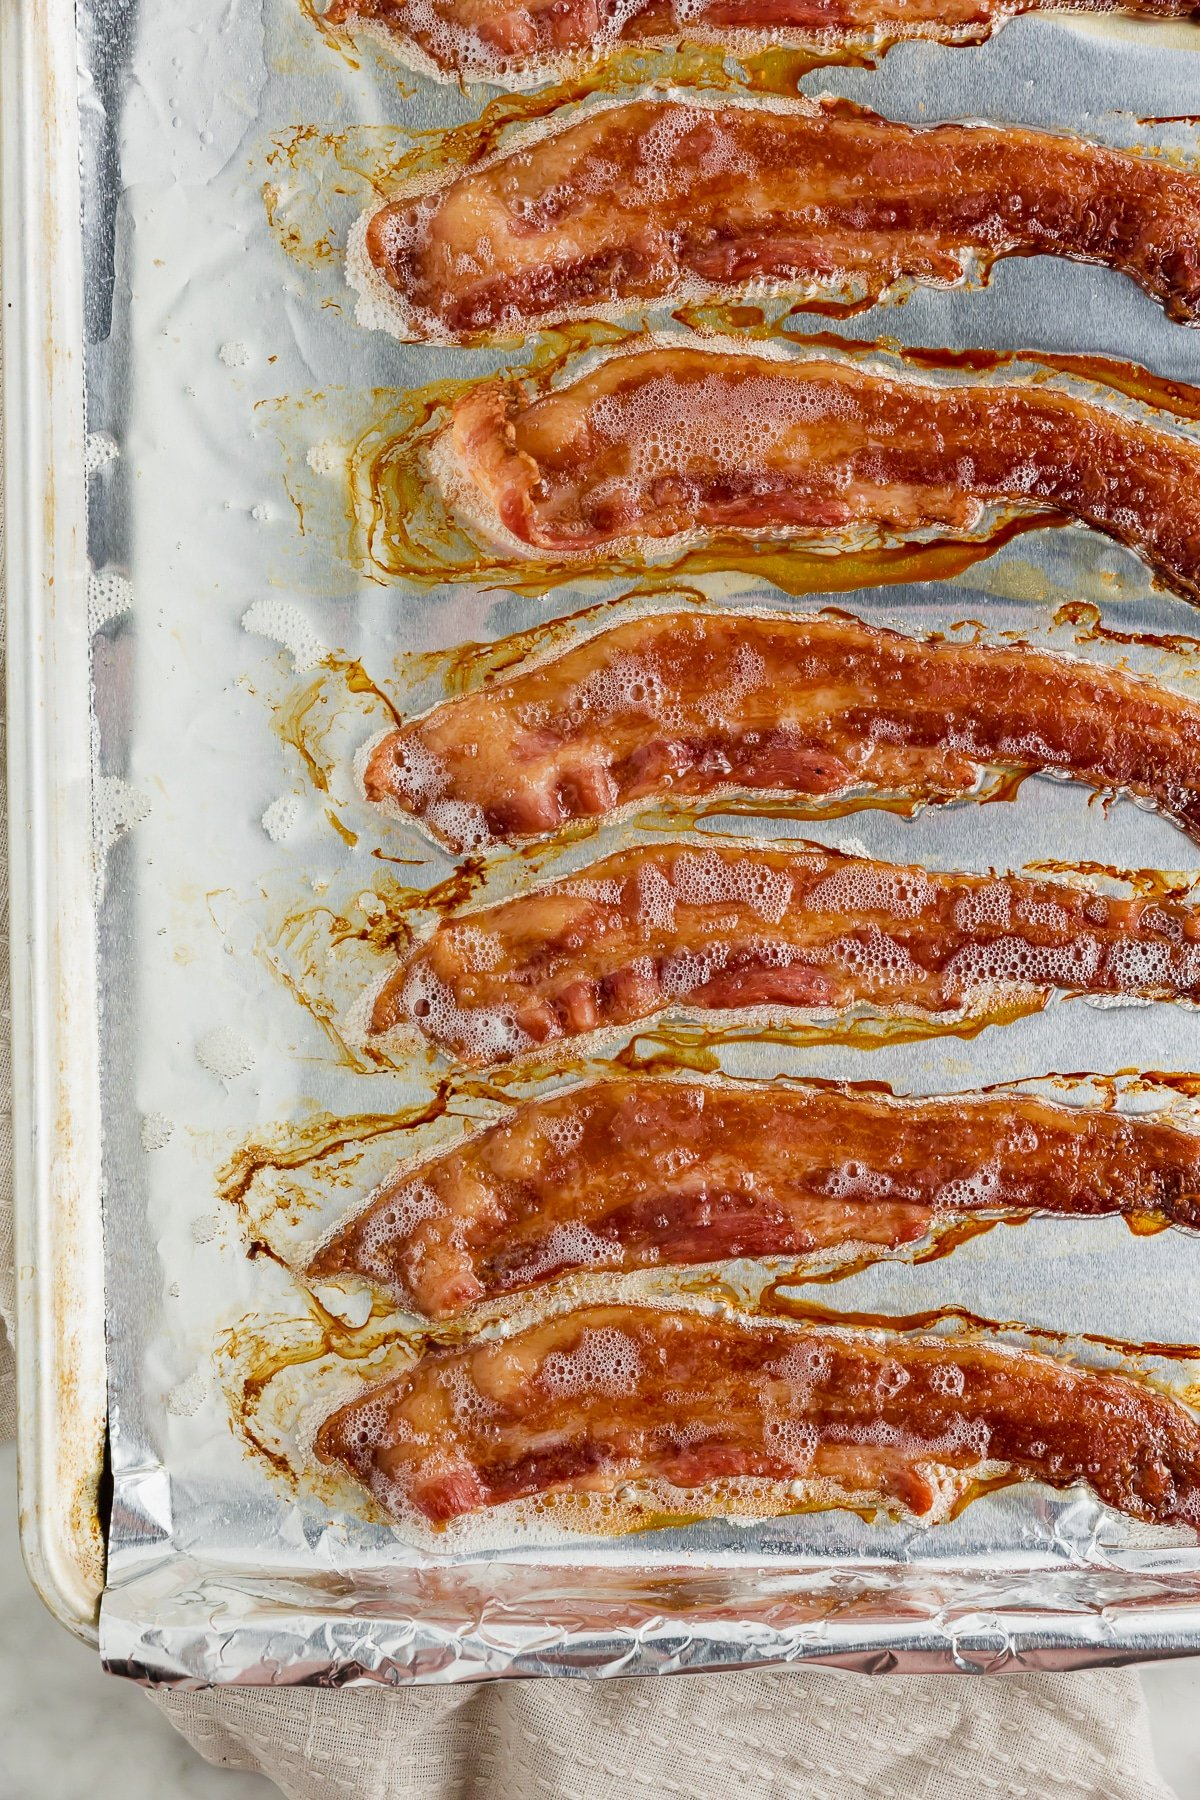 A baking sheet with cooked bacon straight fro the oven.